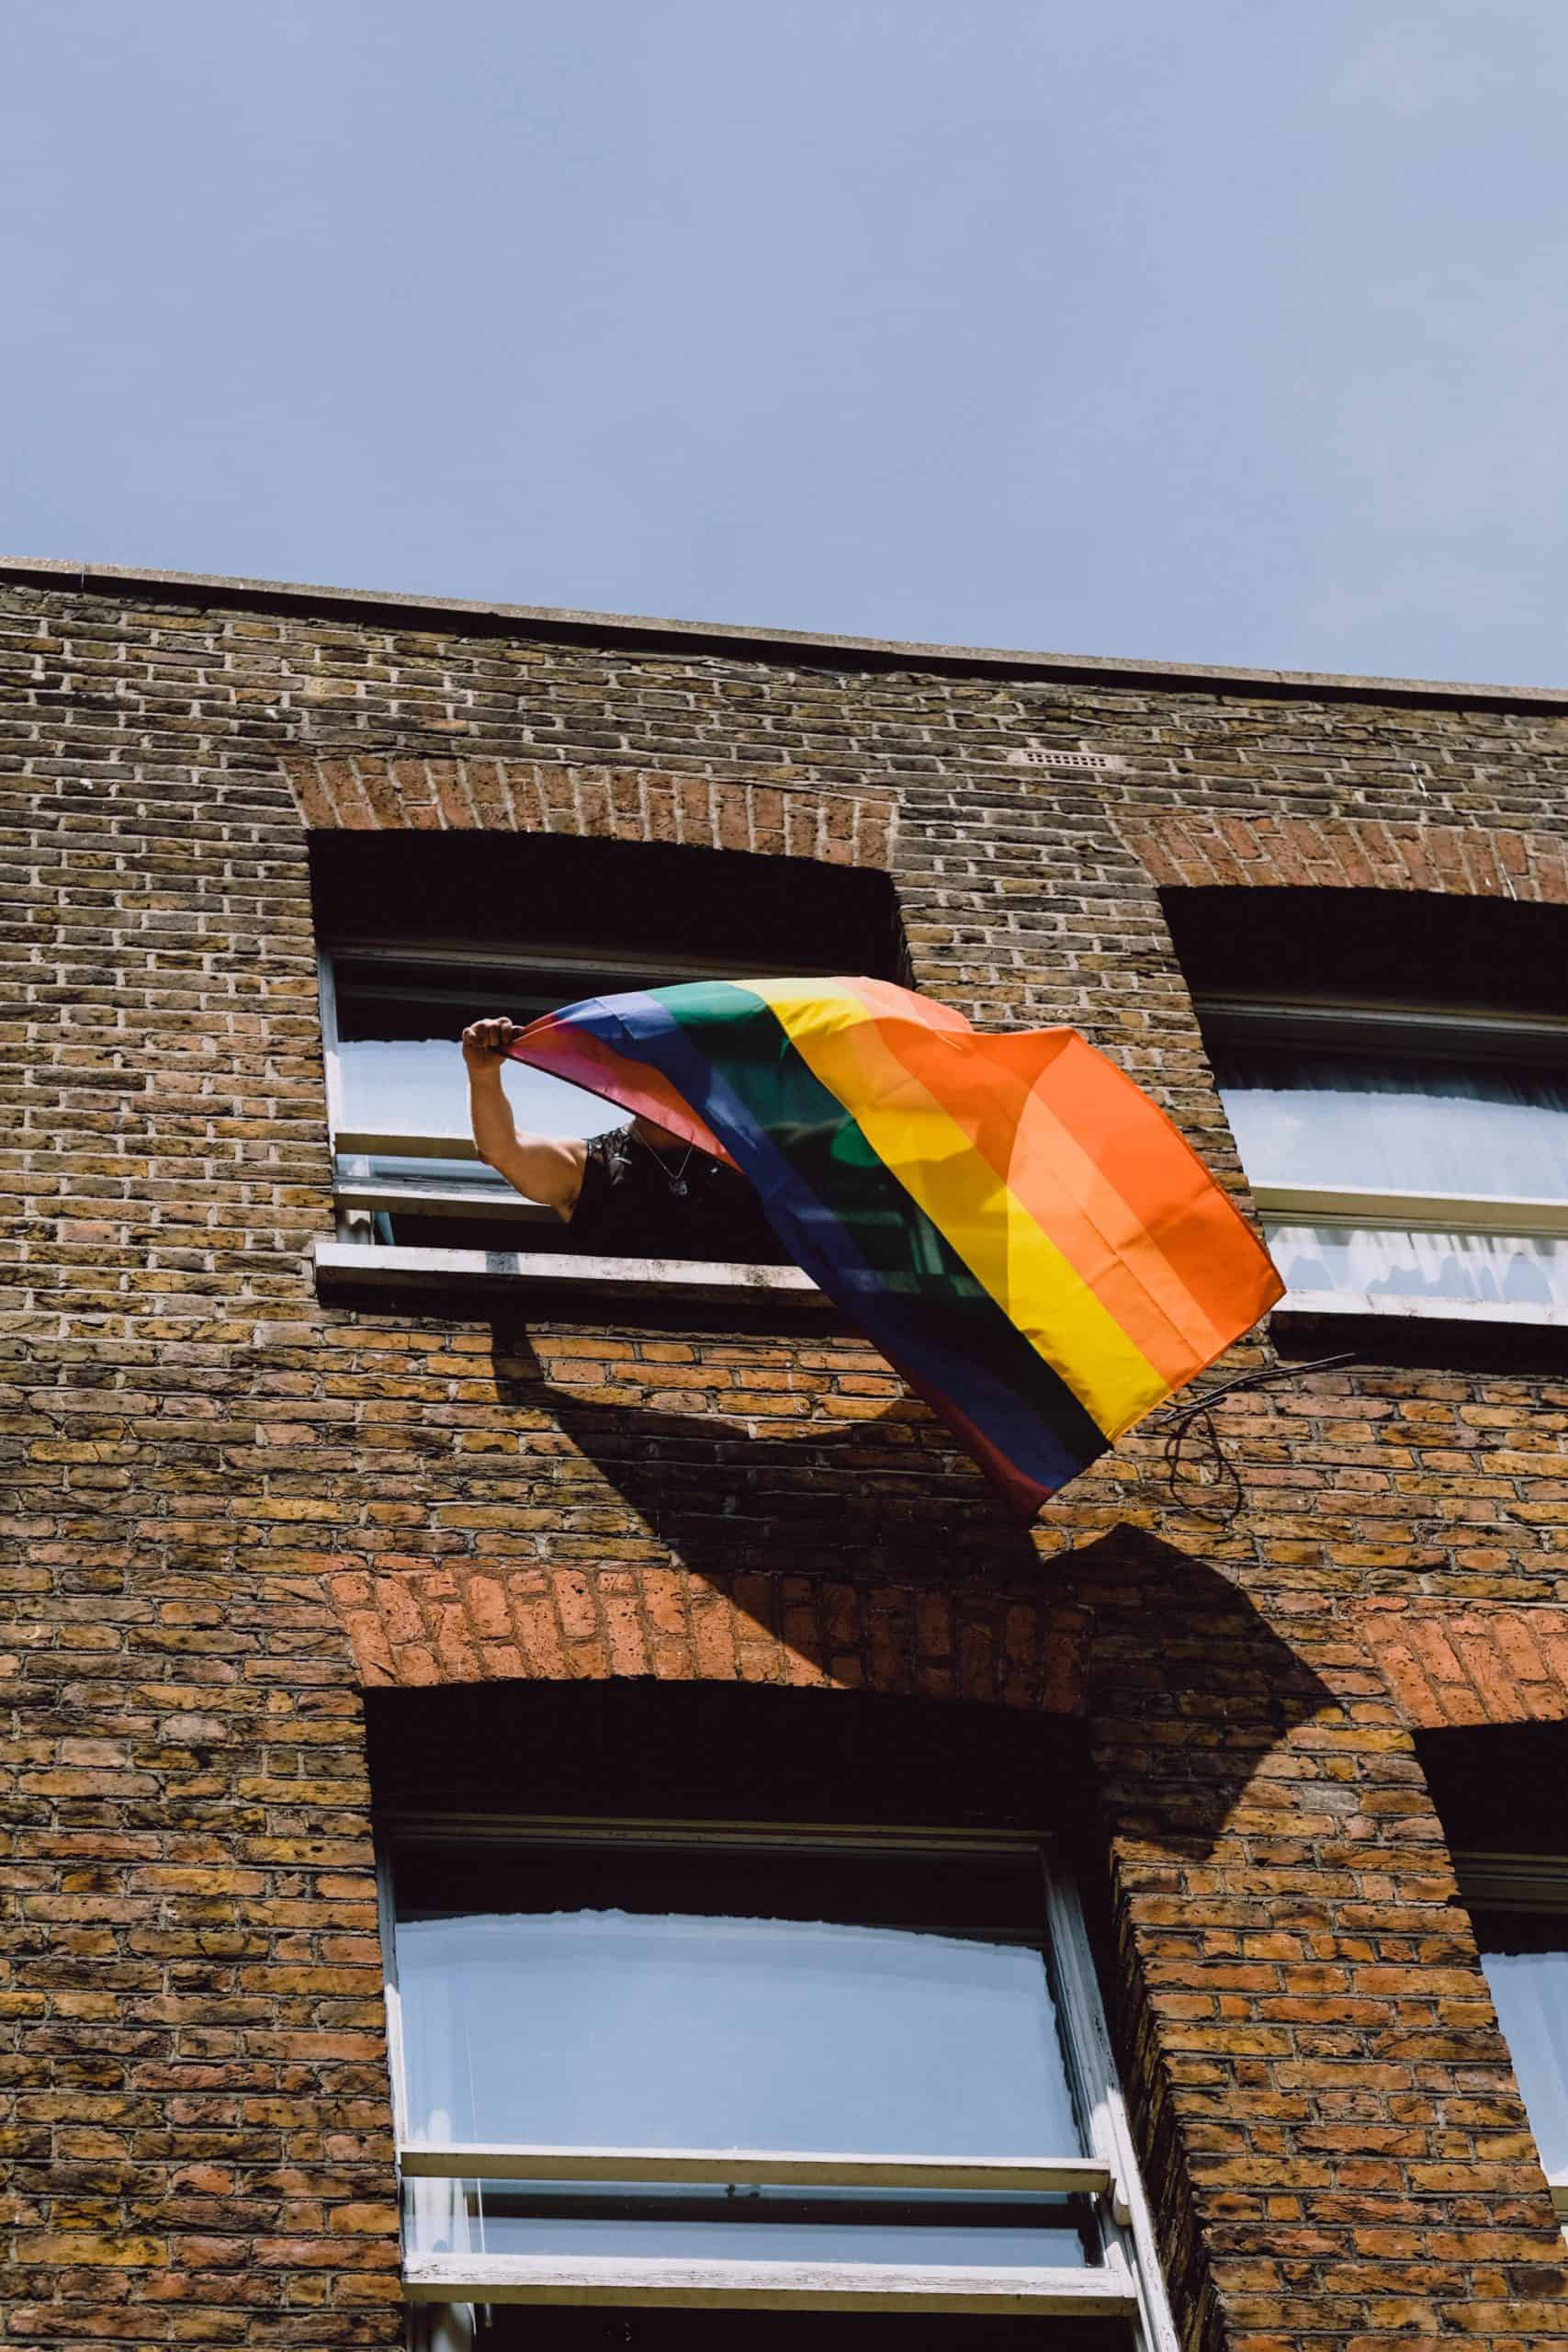 Finding Pride in Non-Affirming Spaces